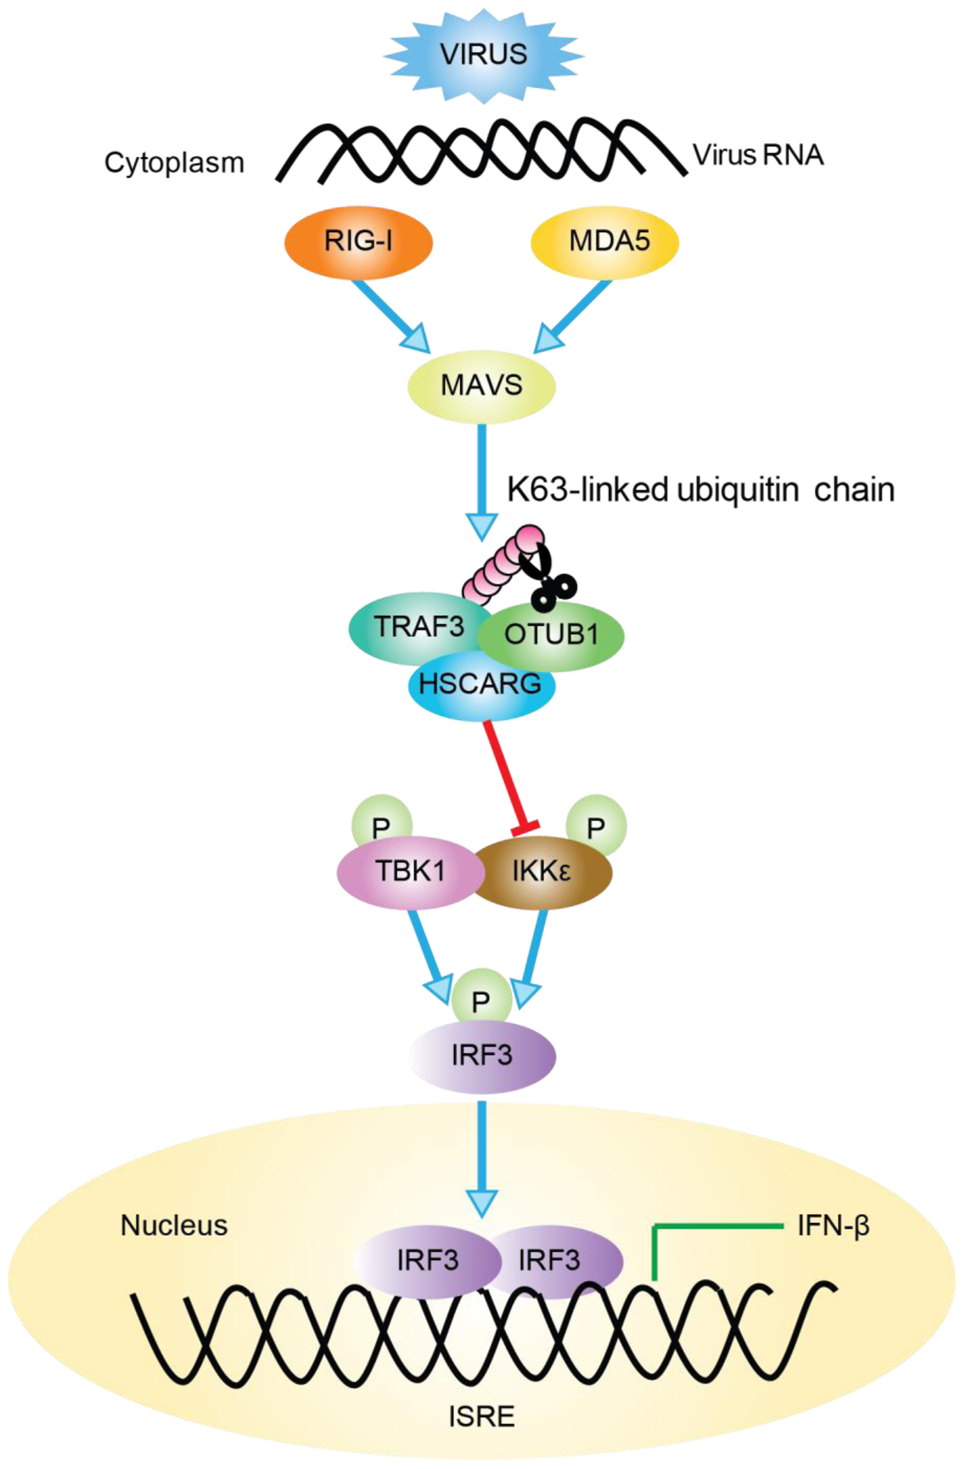 Working model of TRAF3-dependent regulation of RLR signaling pathway by HSCARG.